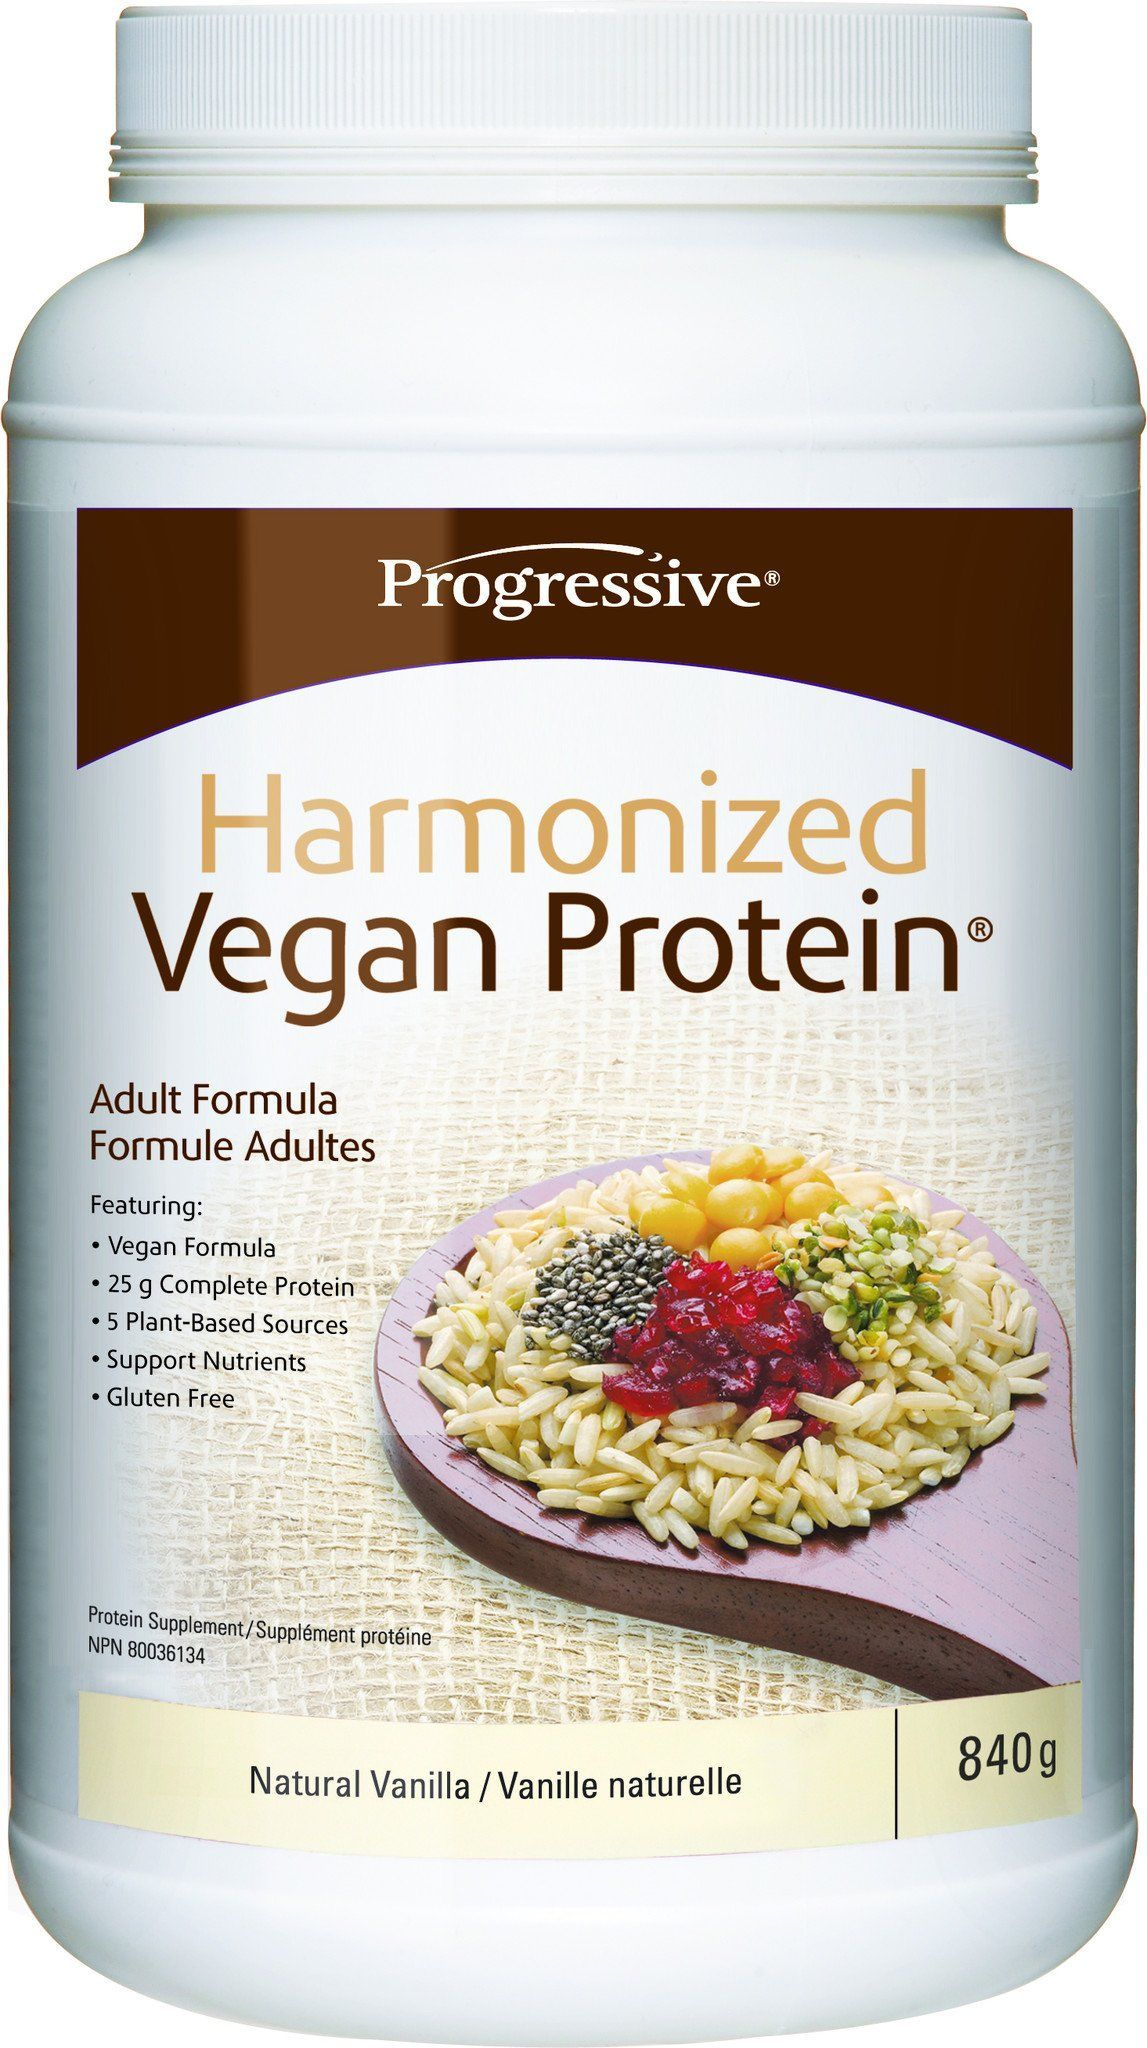 Supplements & Vitamins - Progressive - Harmonized Vegan Protiein Vanilla, 840g